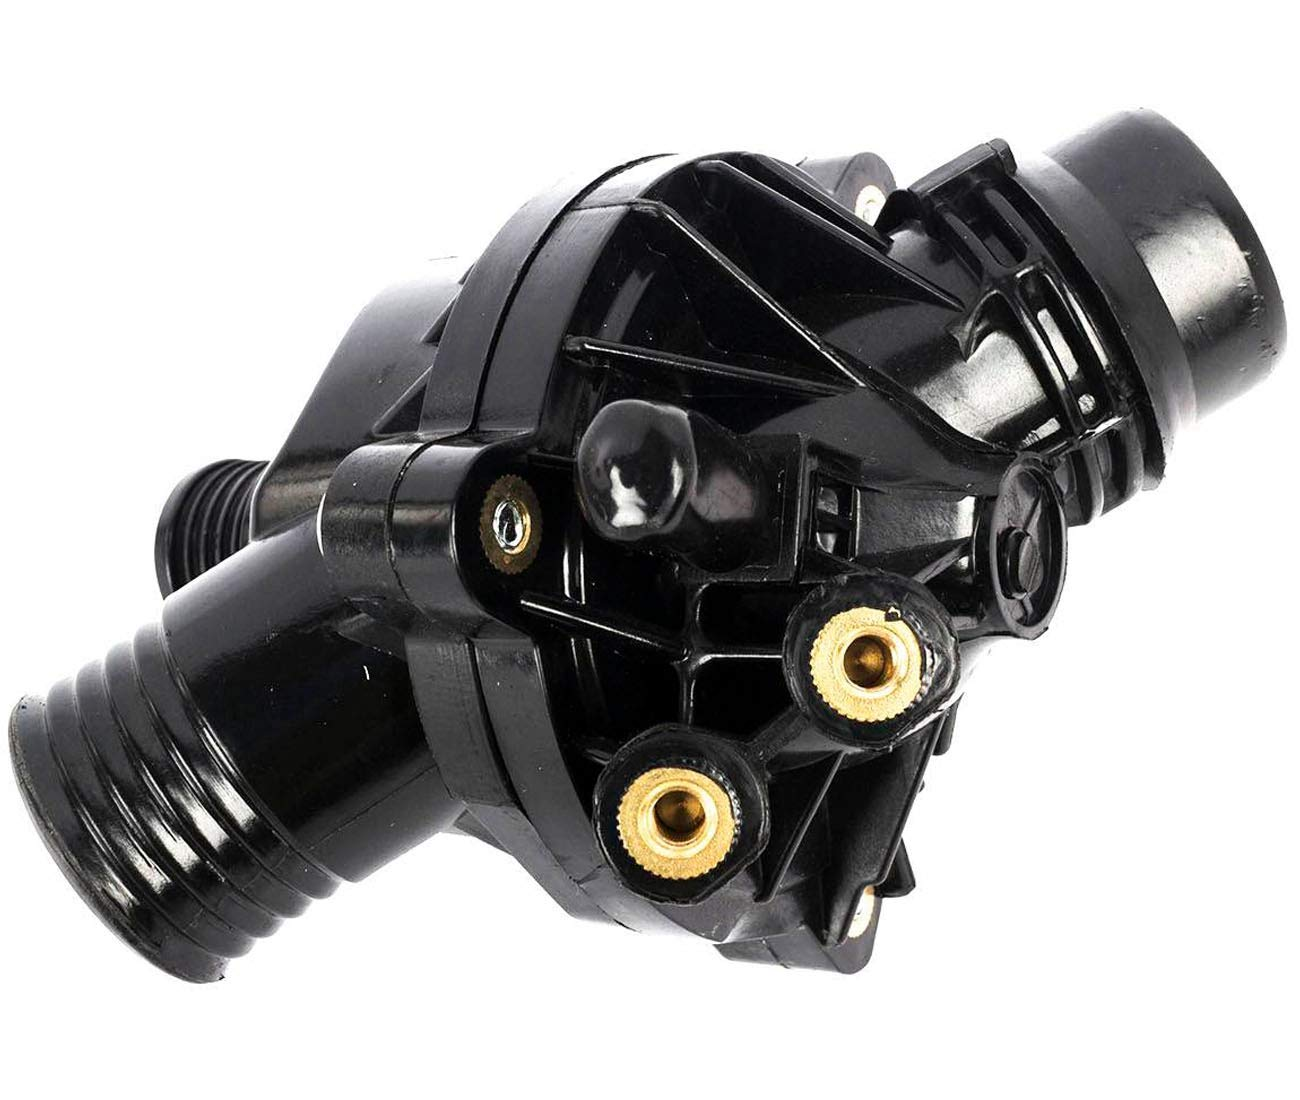 KARPAL Engine Water Pump and Thermostat Wire Harness Bolt 11517586925  Compatible With BMW E90 E91 X3 Z4 328i 530xi 325i